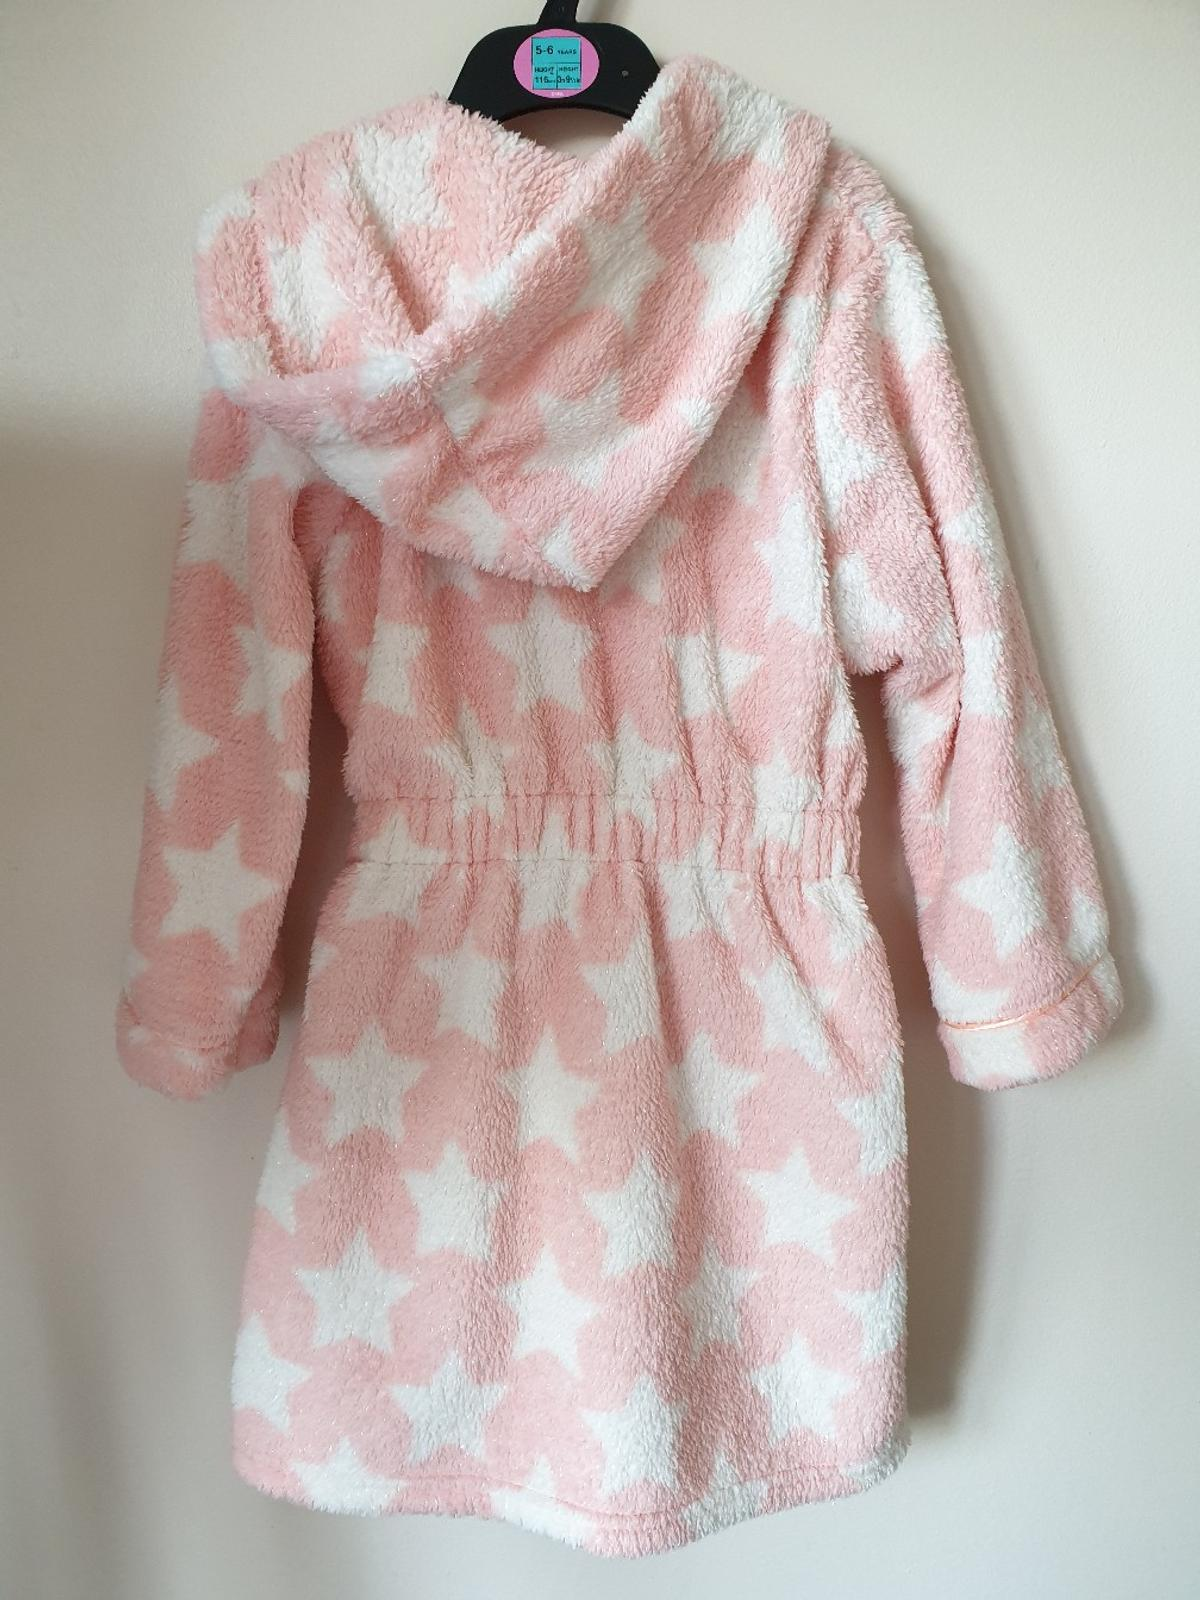 M&S girls hooded dressing gown, excellent condition. Size 4-5 years.  Collection from Ham, Richmond TW10.